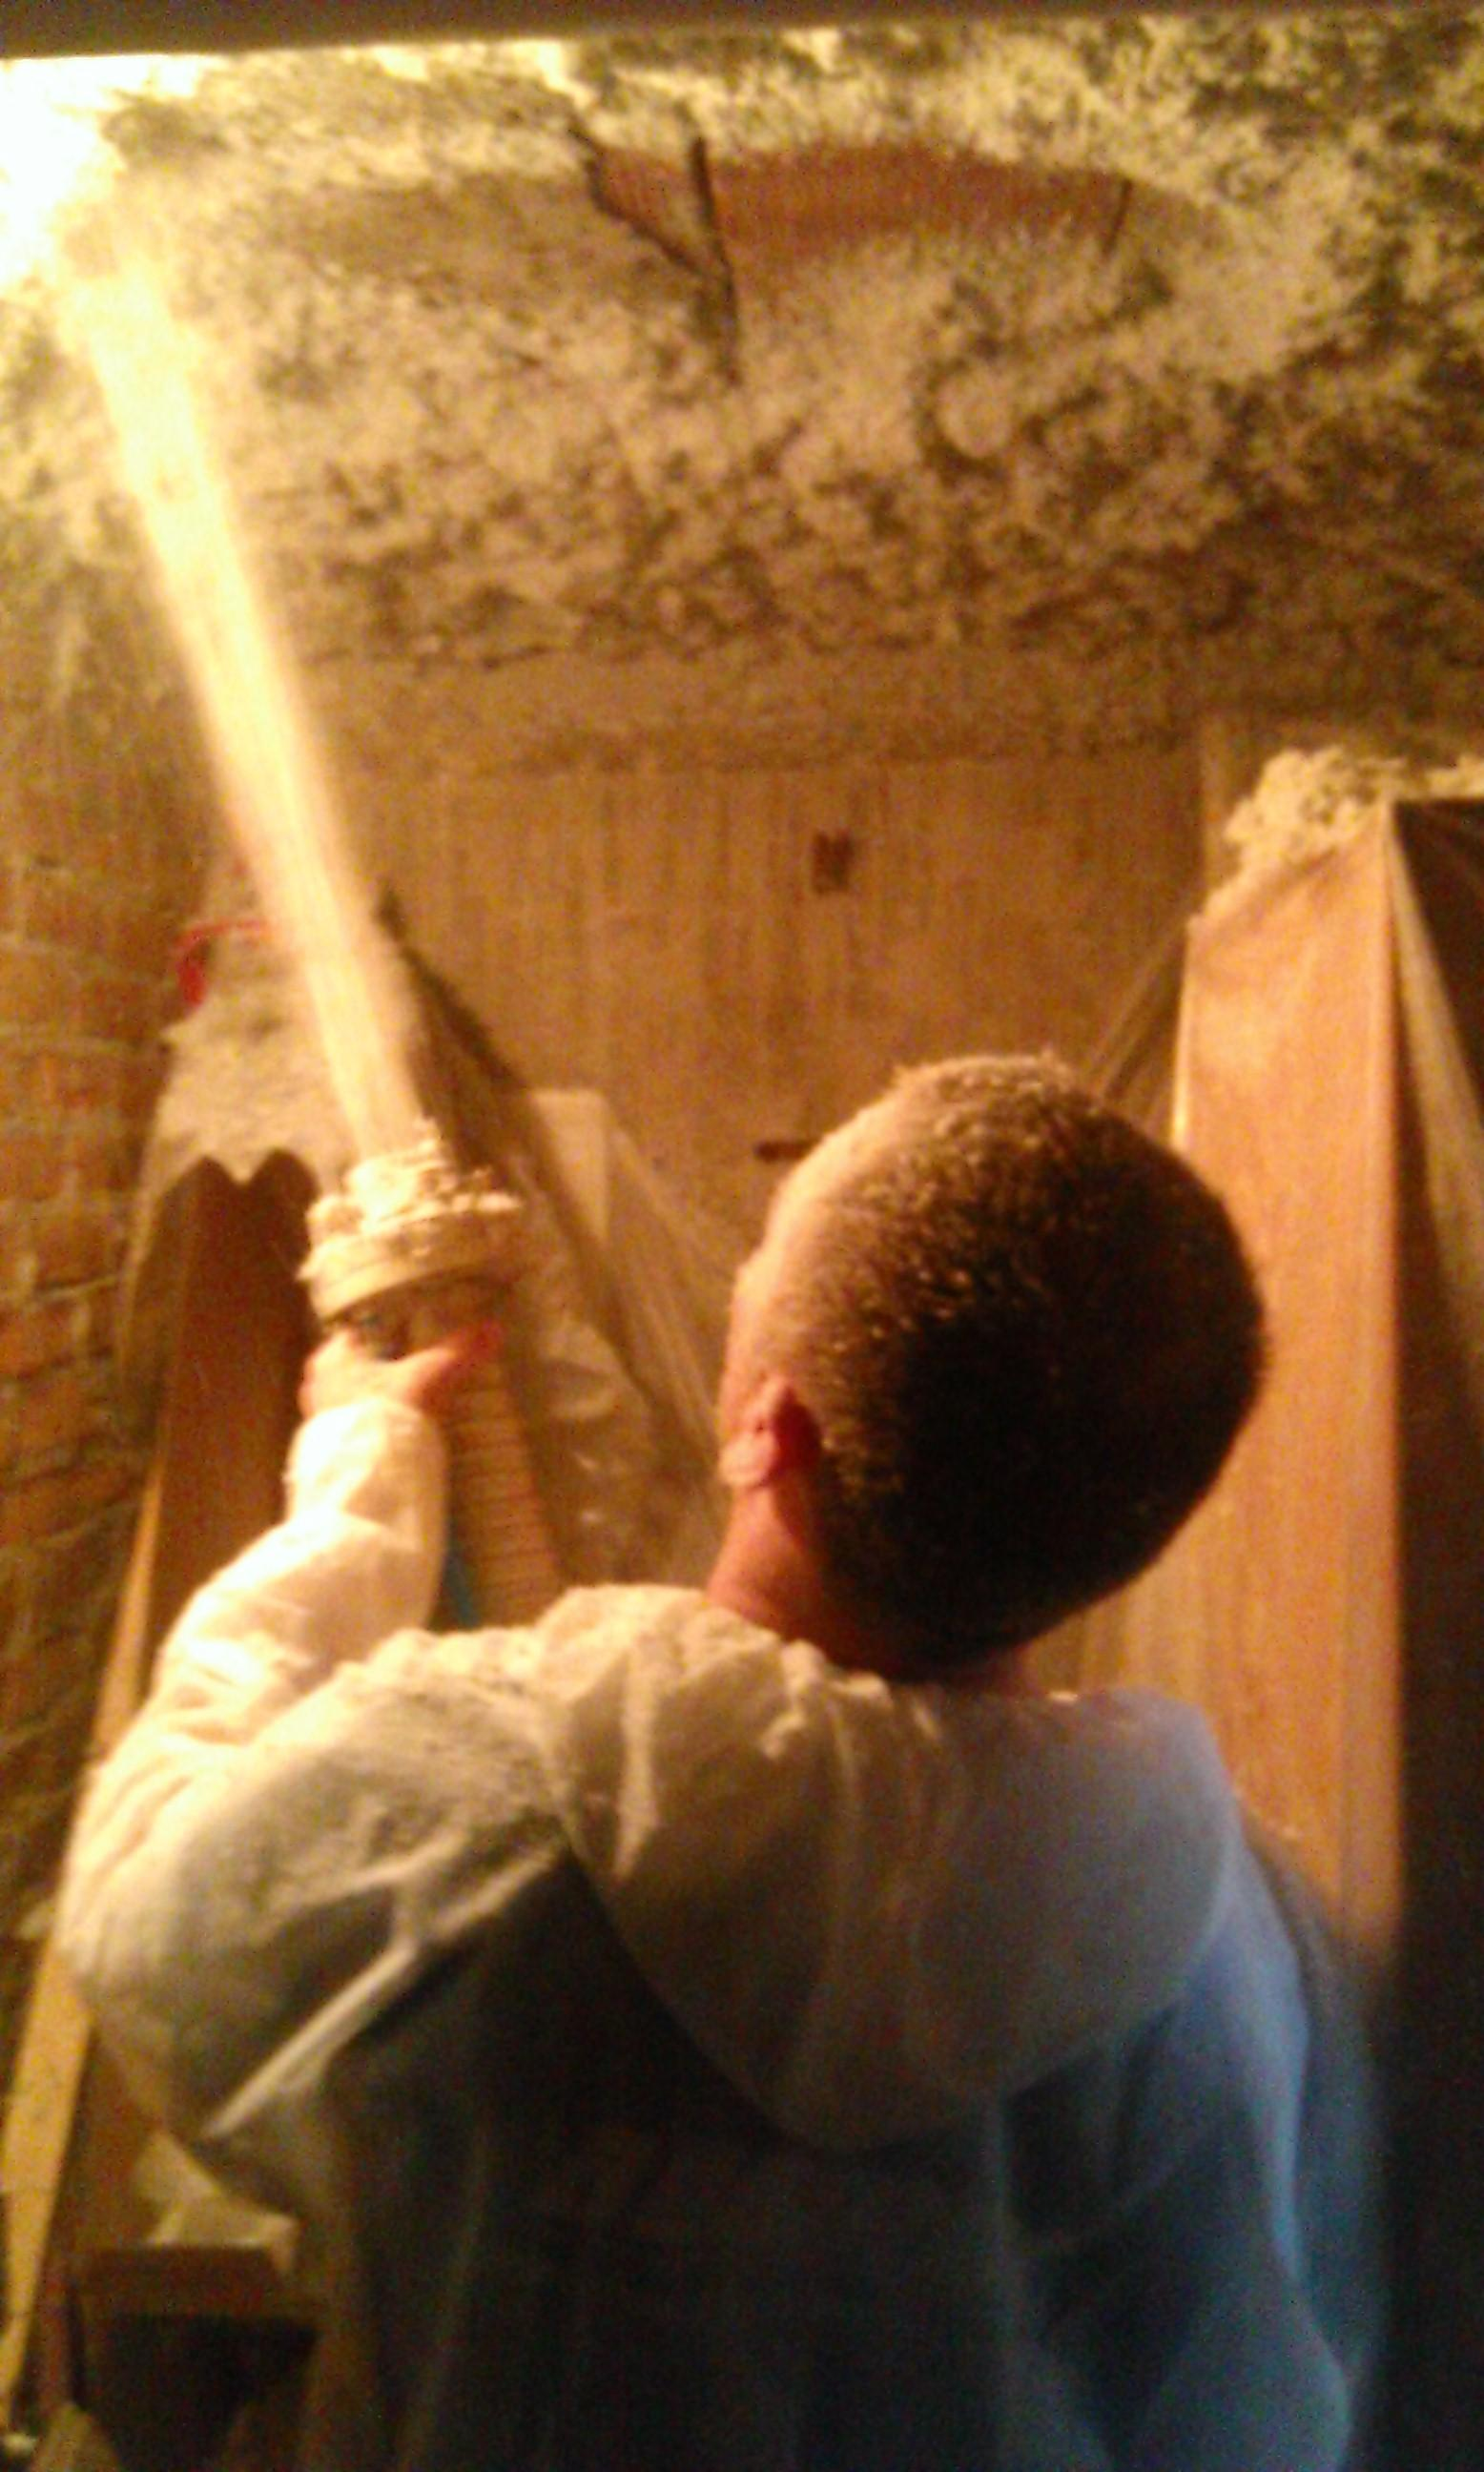 Spraying granules of wool on the basement ceiling